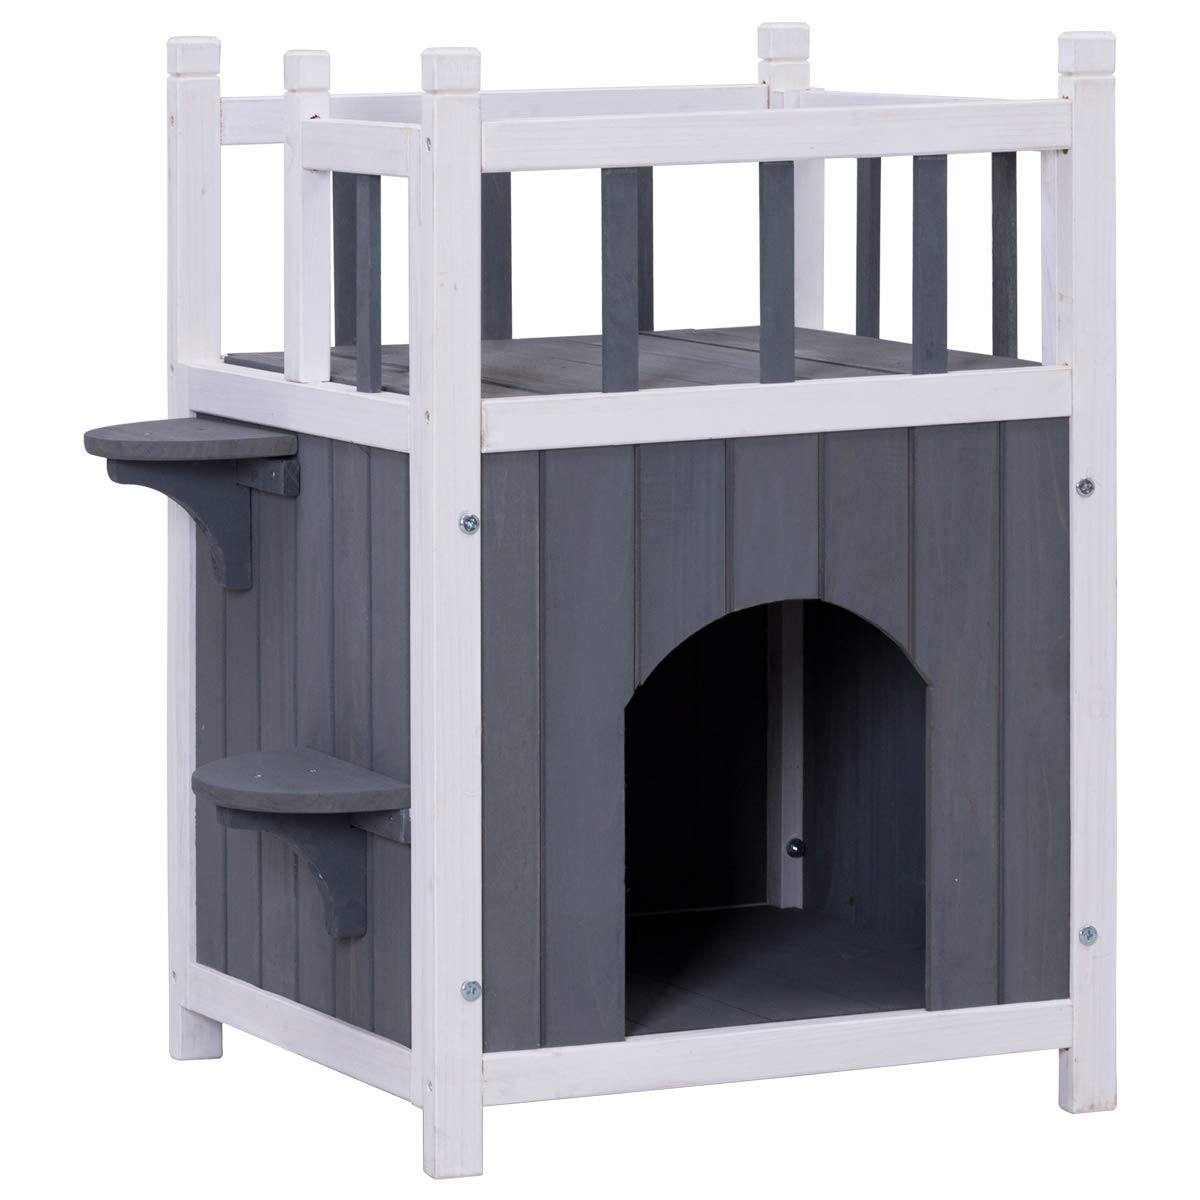 Tangkula Cat House 2 Story Wood Outdoor Weatherproof Pet Kitten Condo Shelter by Tangkula